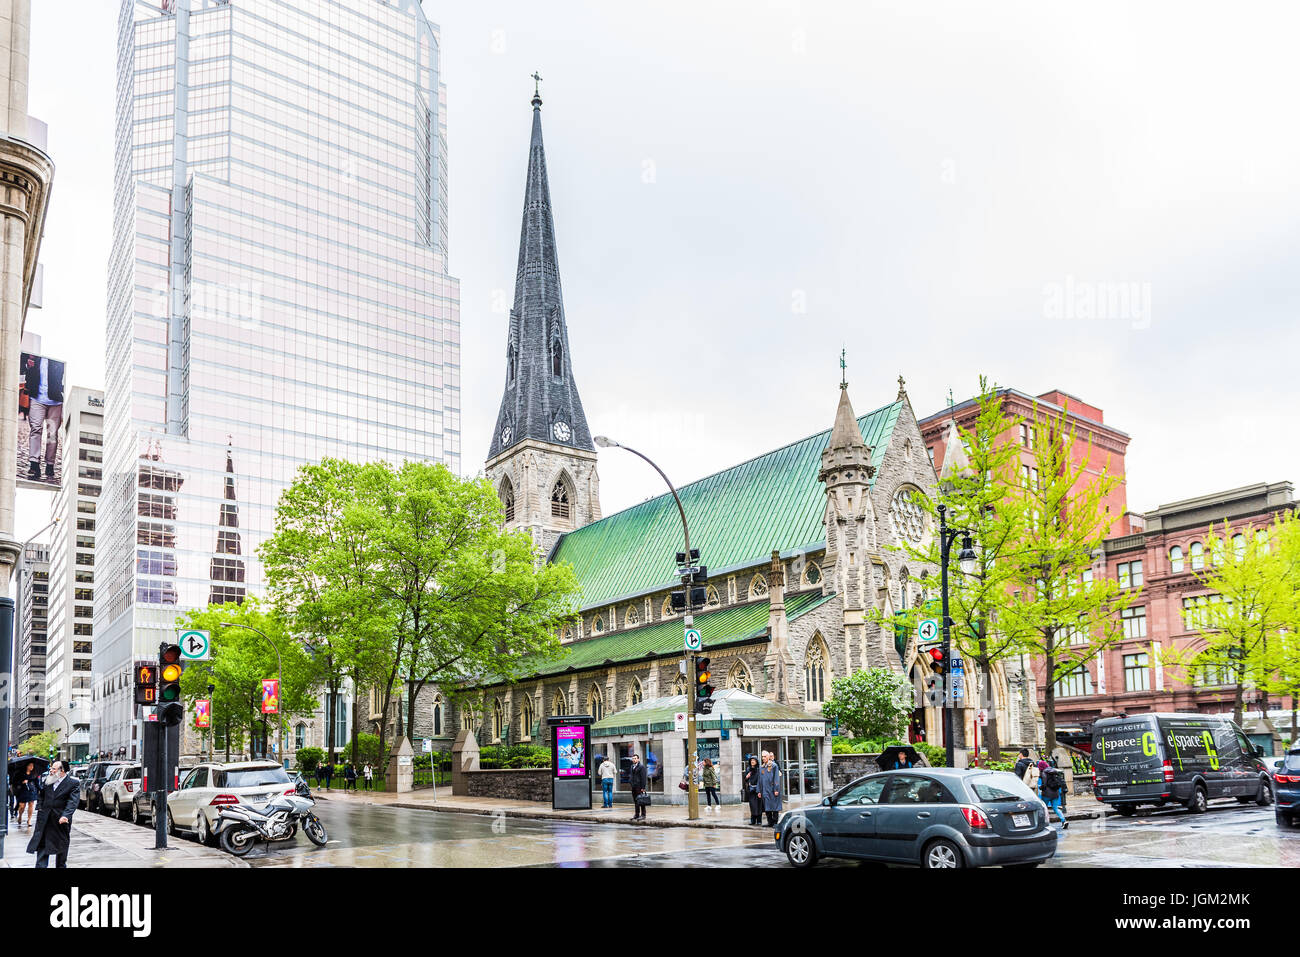 Montreal, Canada - May 26, 2017: Christ Church Cathedral and Promenades de la Cathedrale with KPMG building in downtown - Stock Image